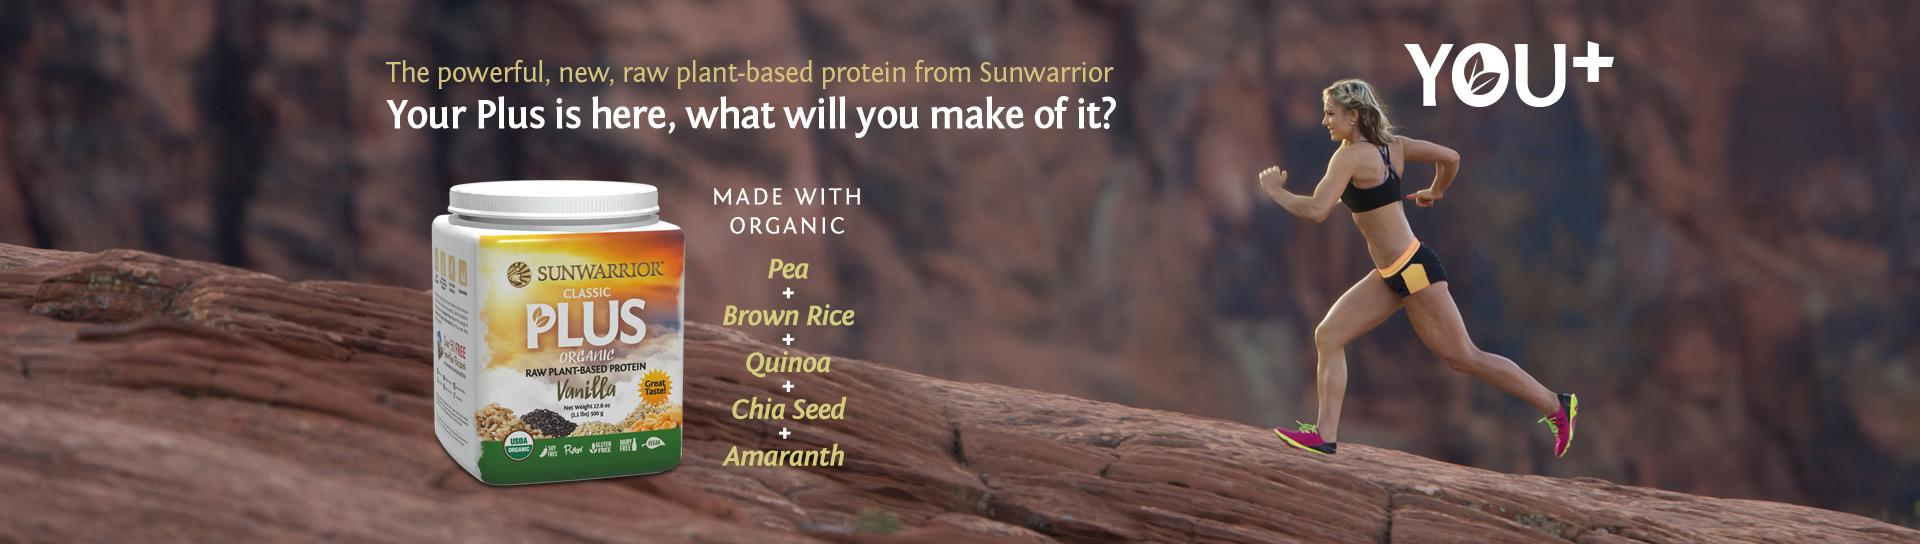 Sunwarrior Plus protein powder information page